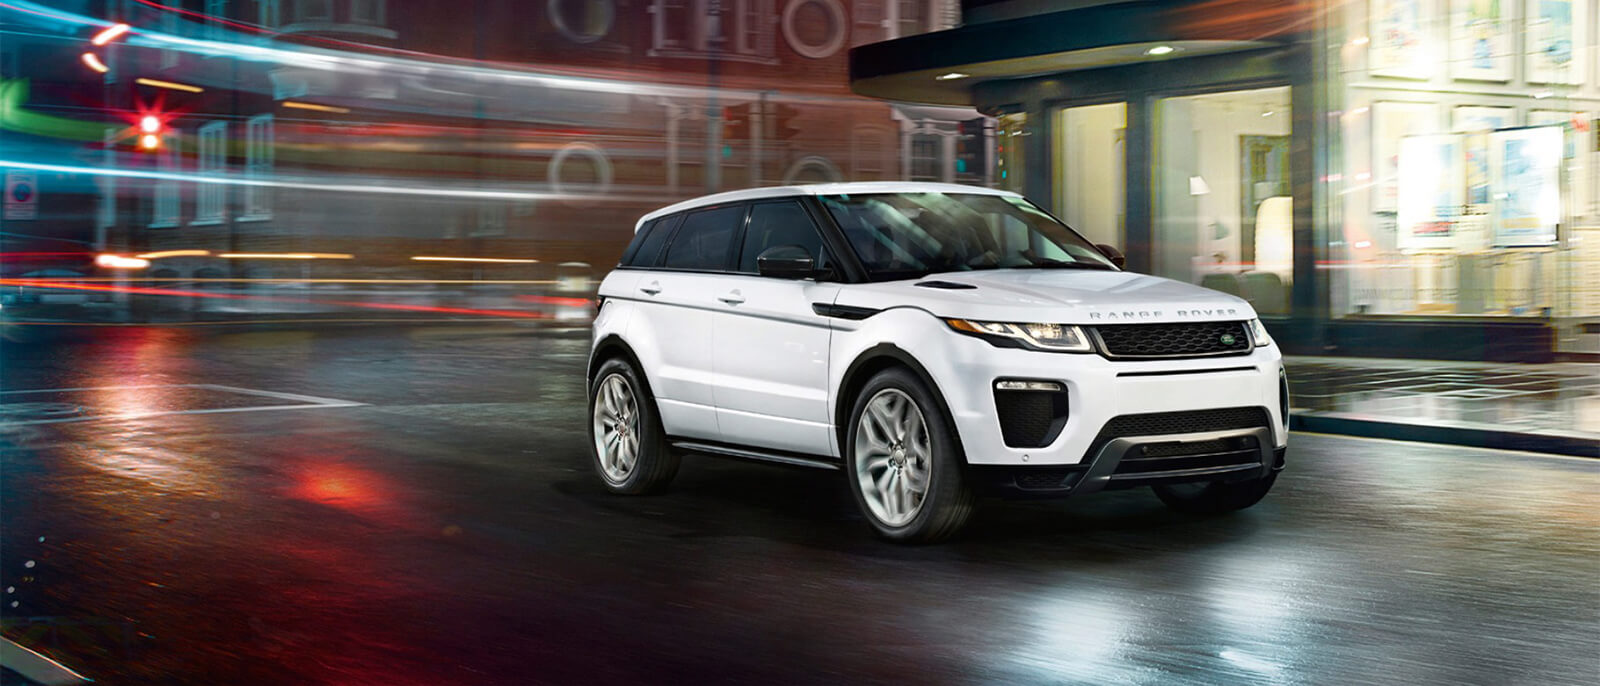 2017 land rover evoque stuns wayne and melbourne pa drivers. Black Bedroom Furniture Sets. Home Design Ideas